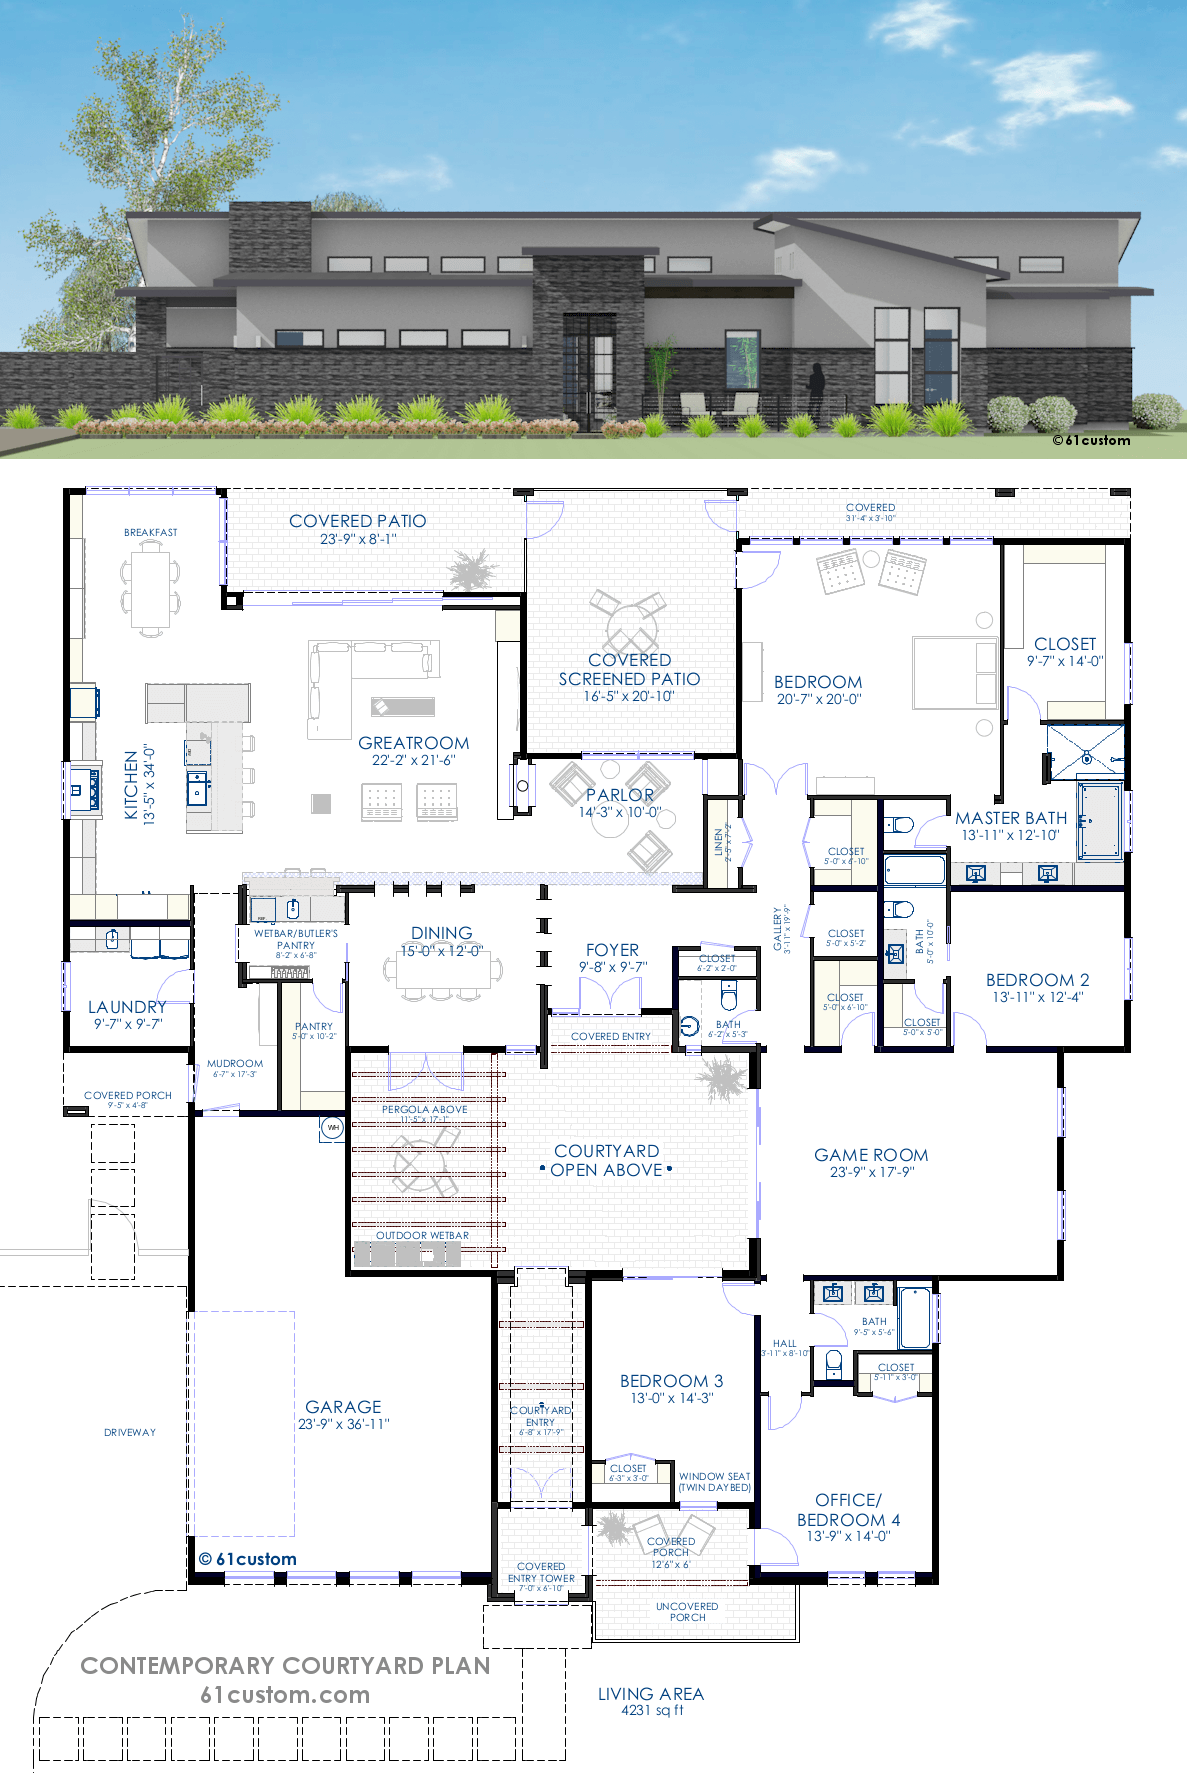 Modern House Plans 61custom | contemporary & modern house plans | custom home design